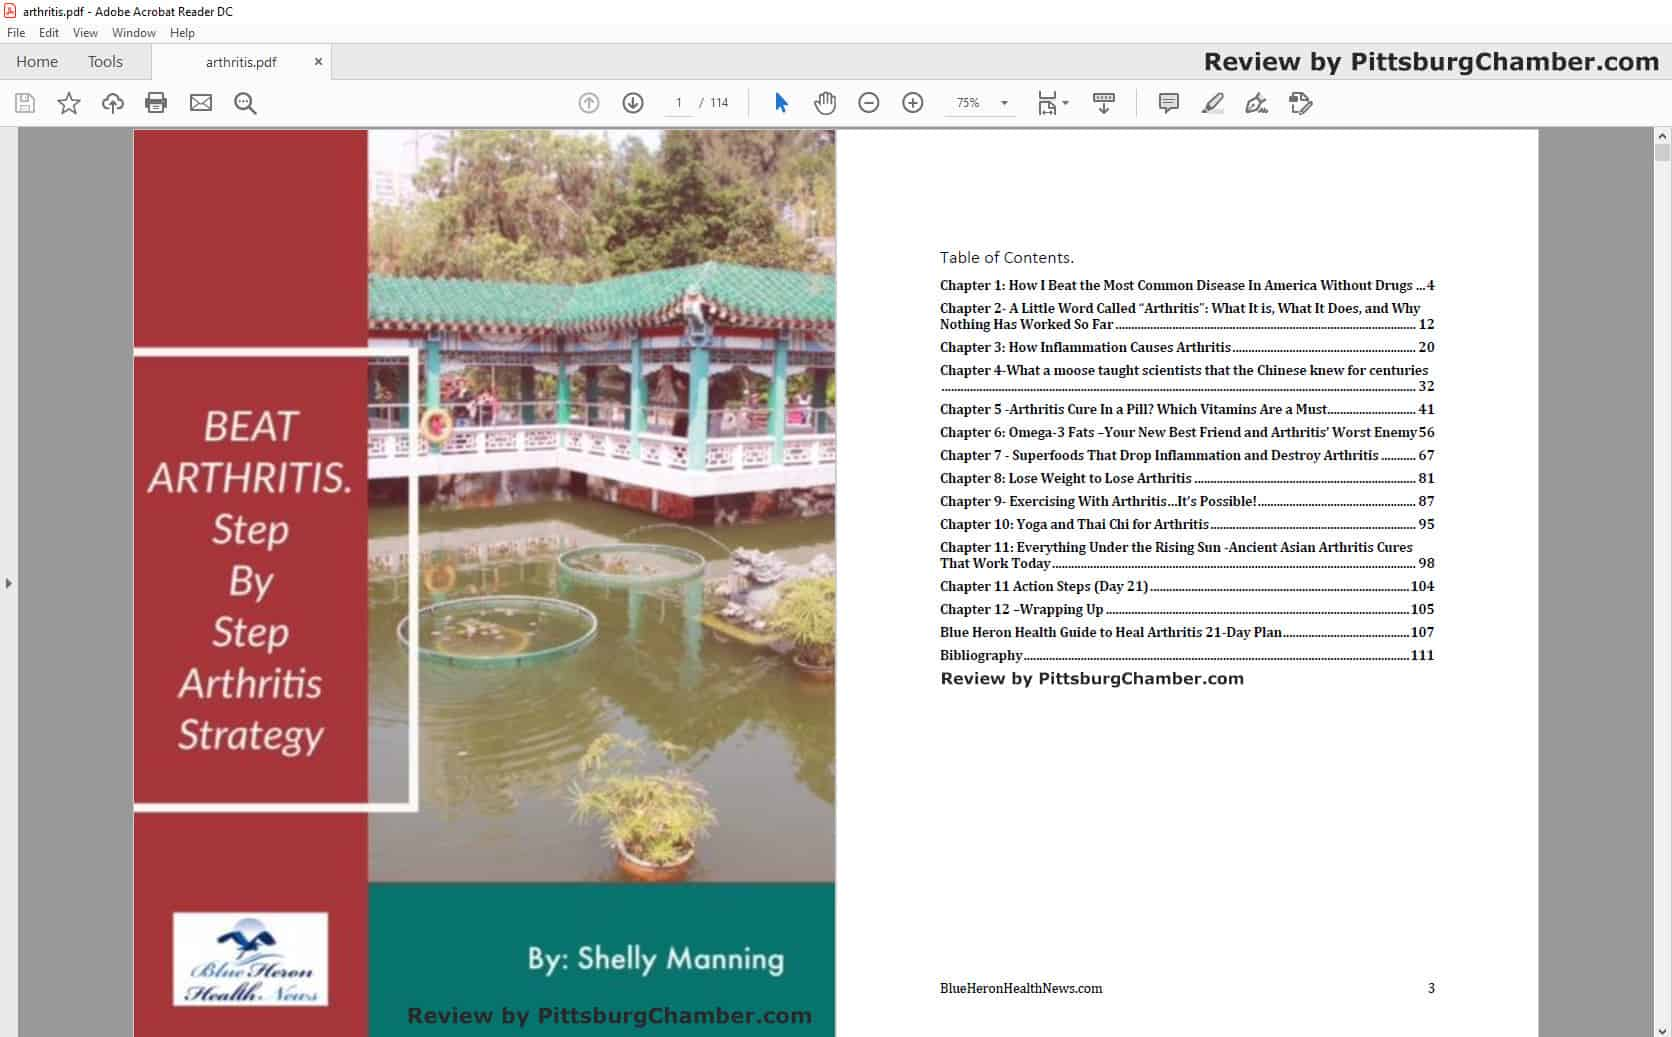 The Arthritis Step By Step Strategy Table of Contents